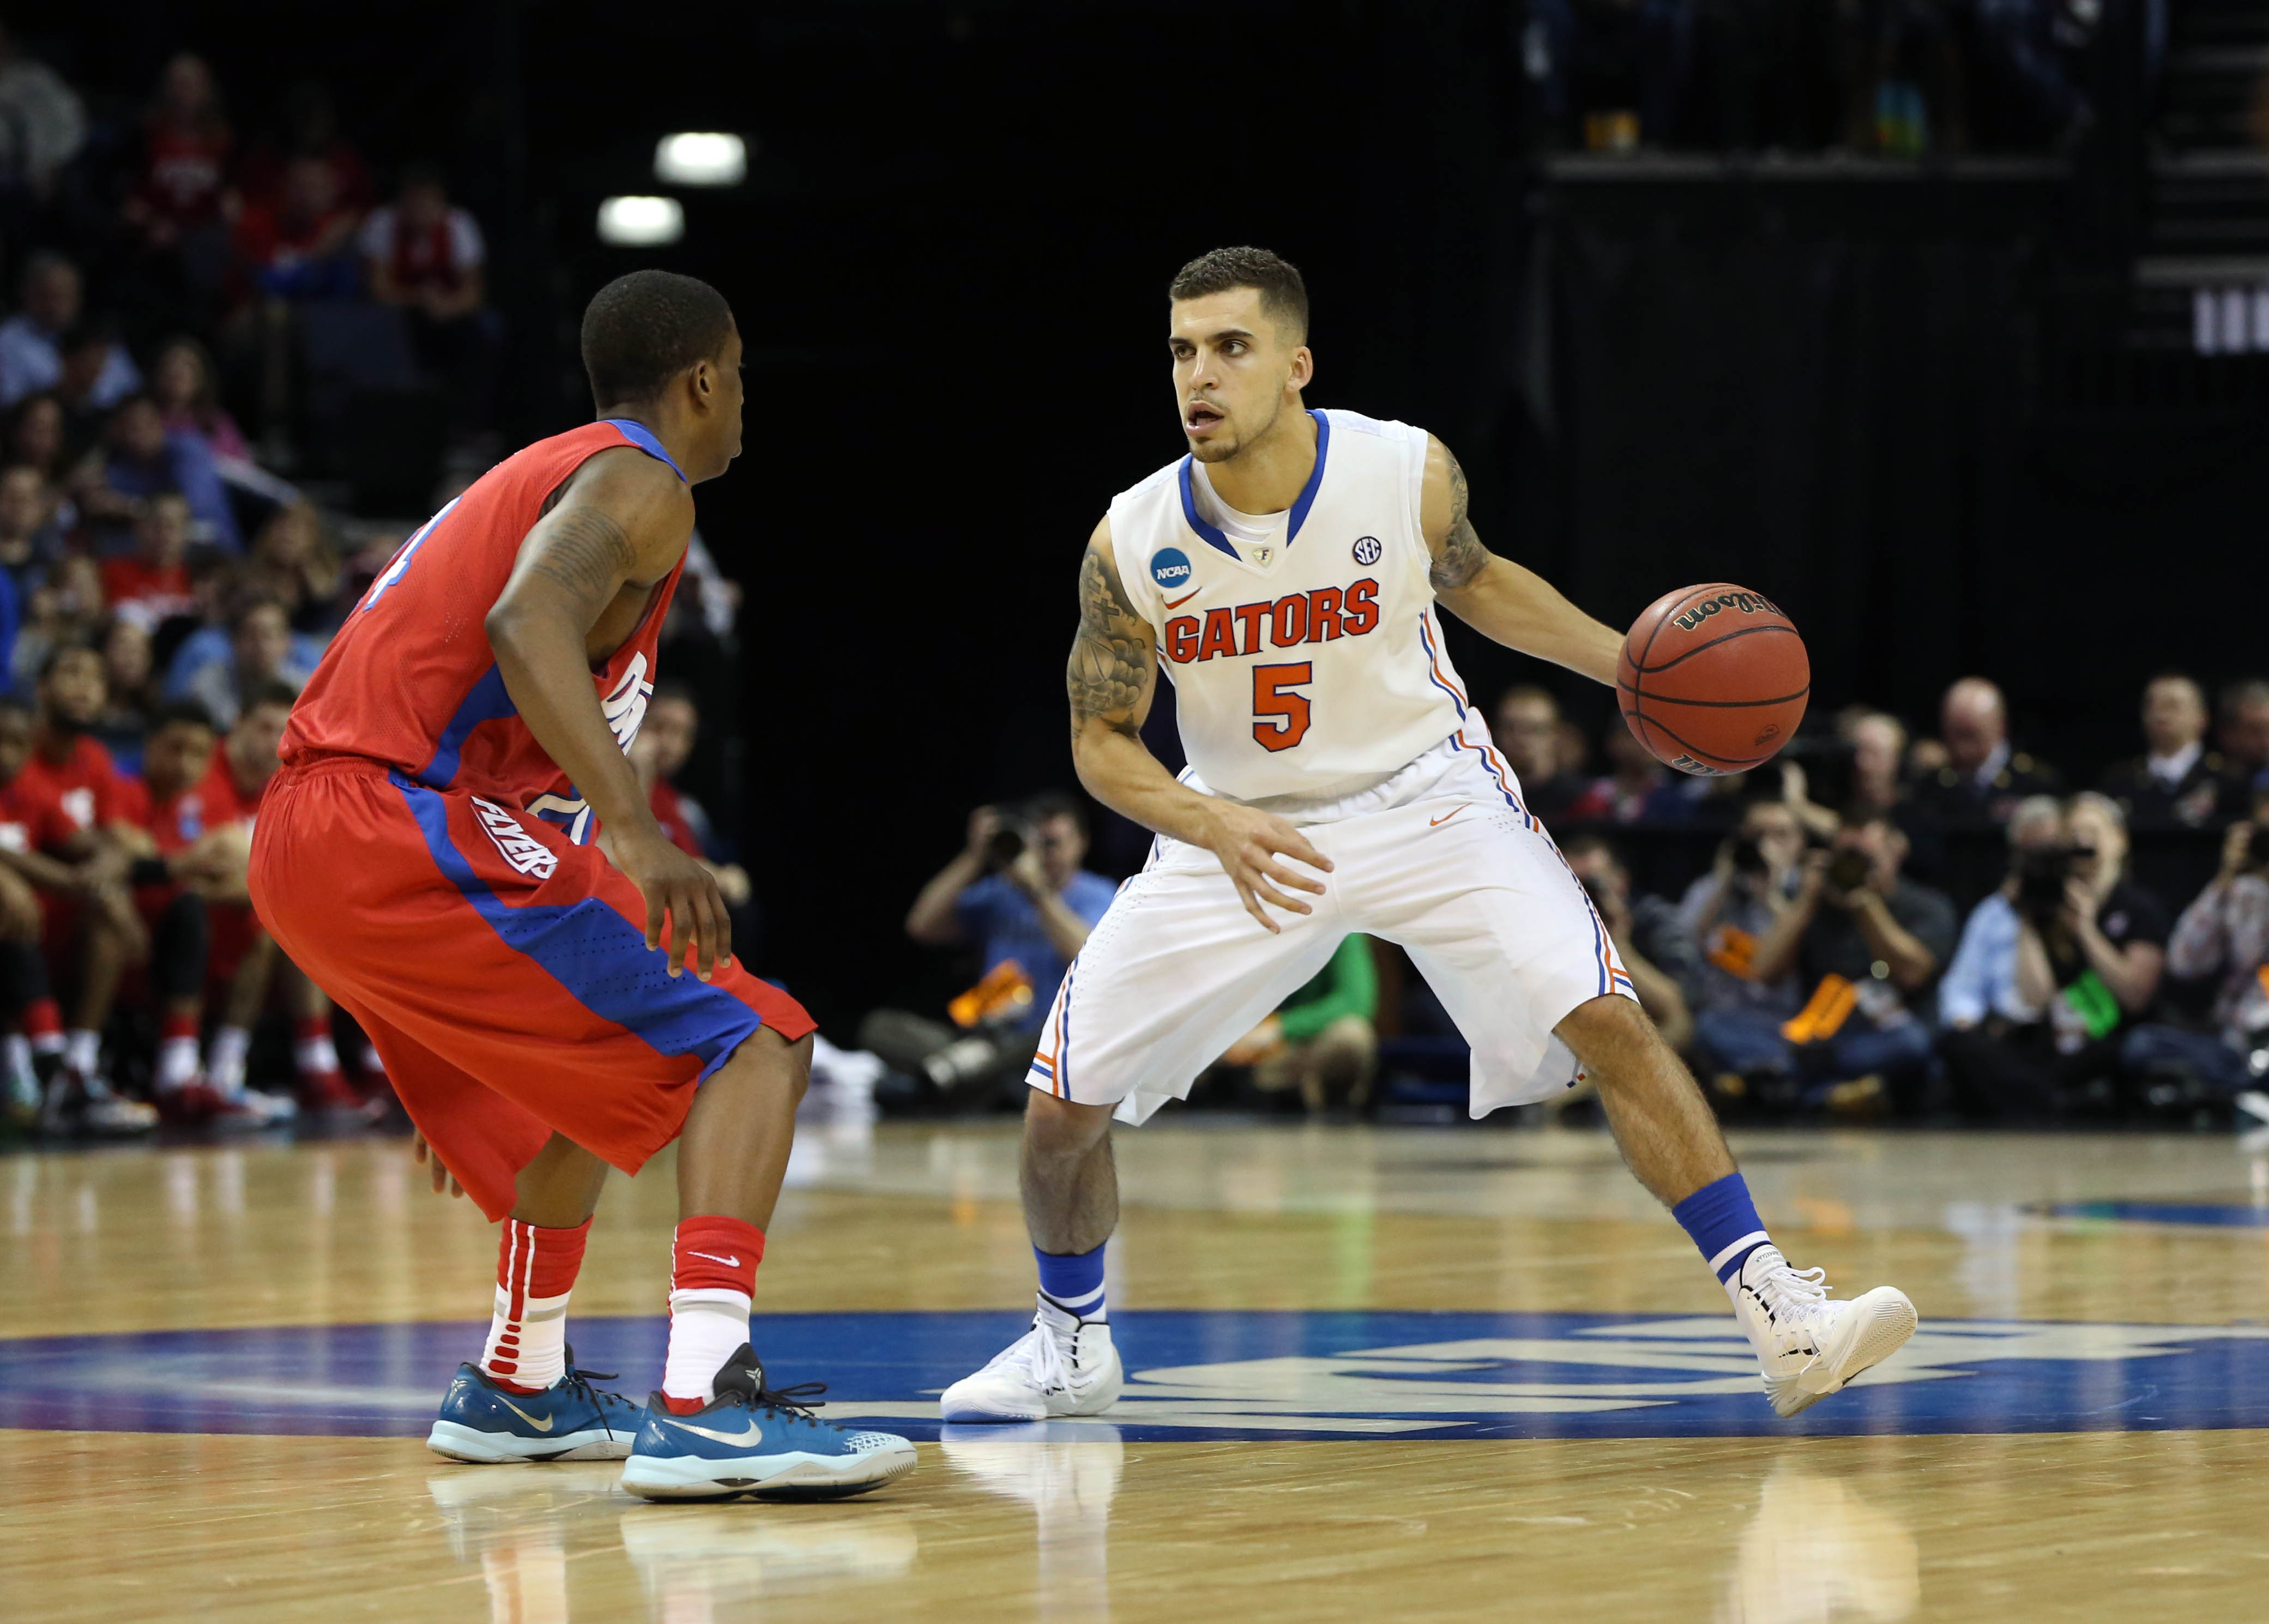 Top 3 Gator Point Guards